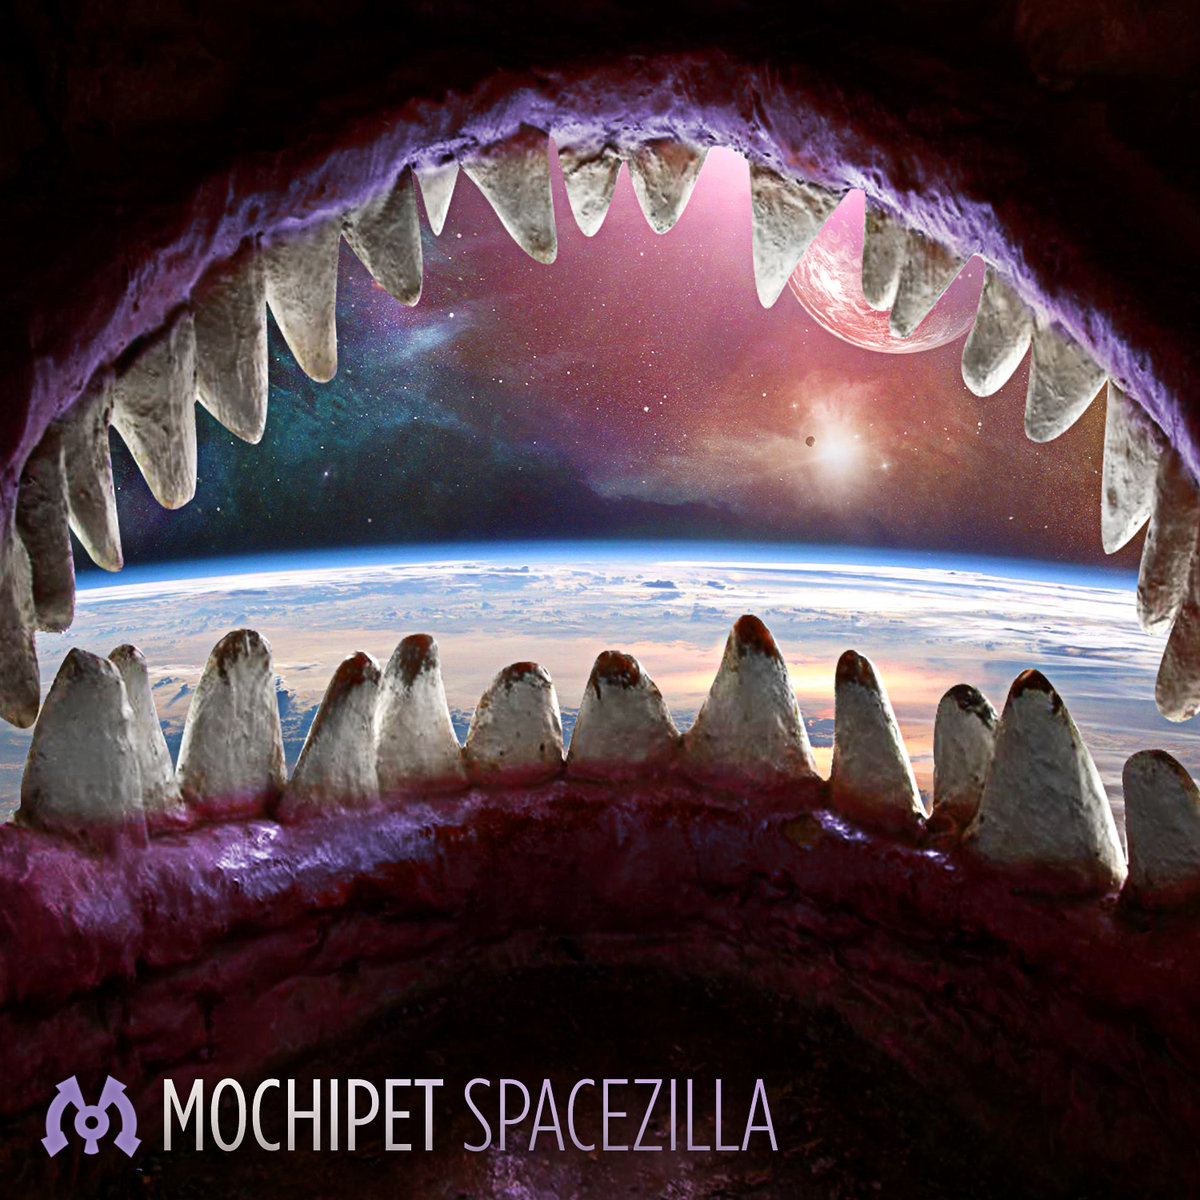 Mochipet - Spacezilla (Fresh Young Minds & Skulltrane Remix) @ 'Spacezilla' album (electronic, dubstep)